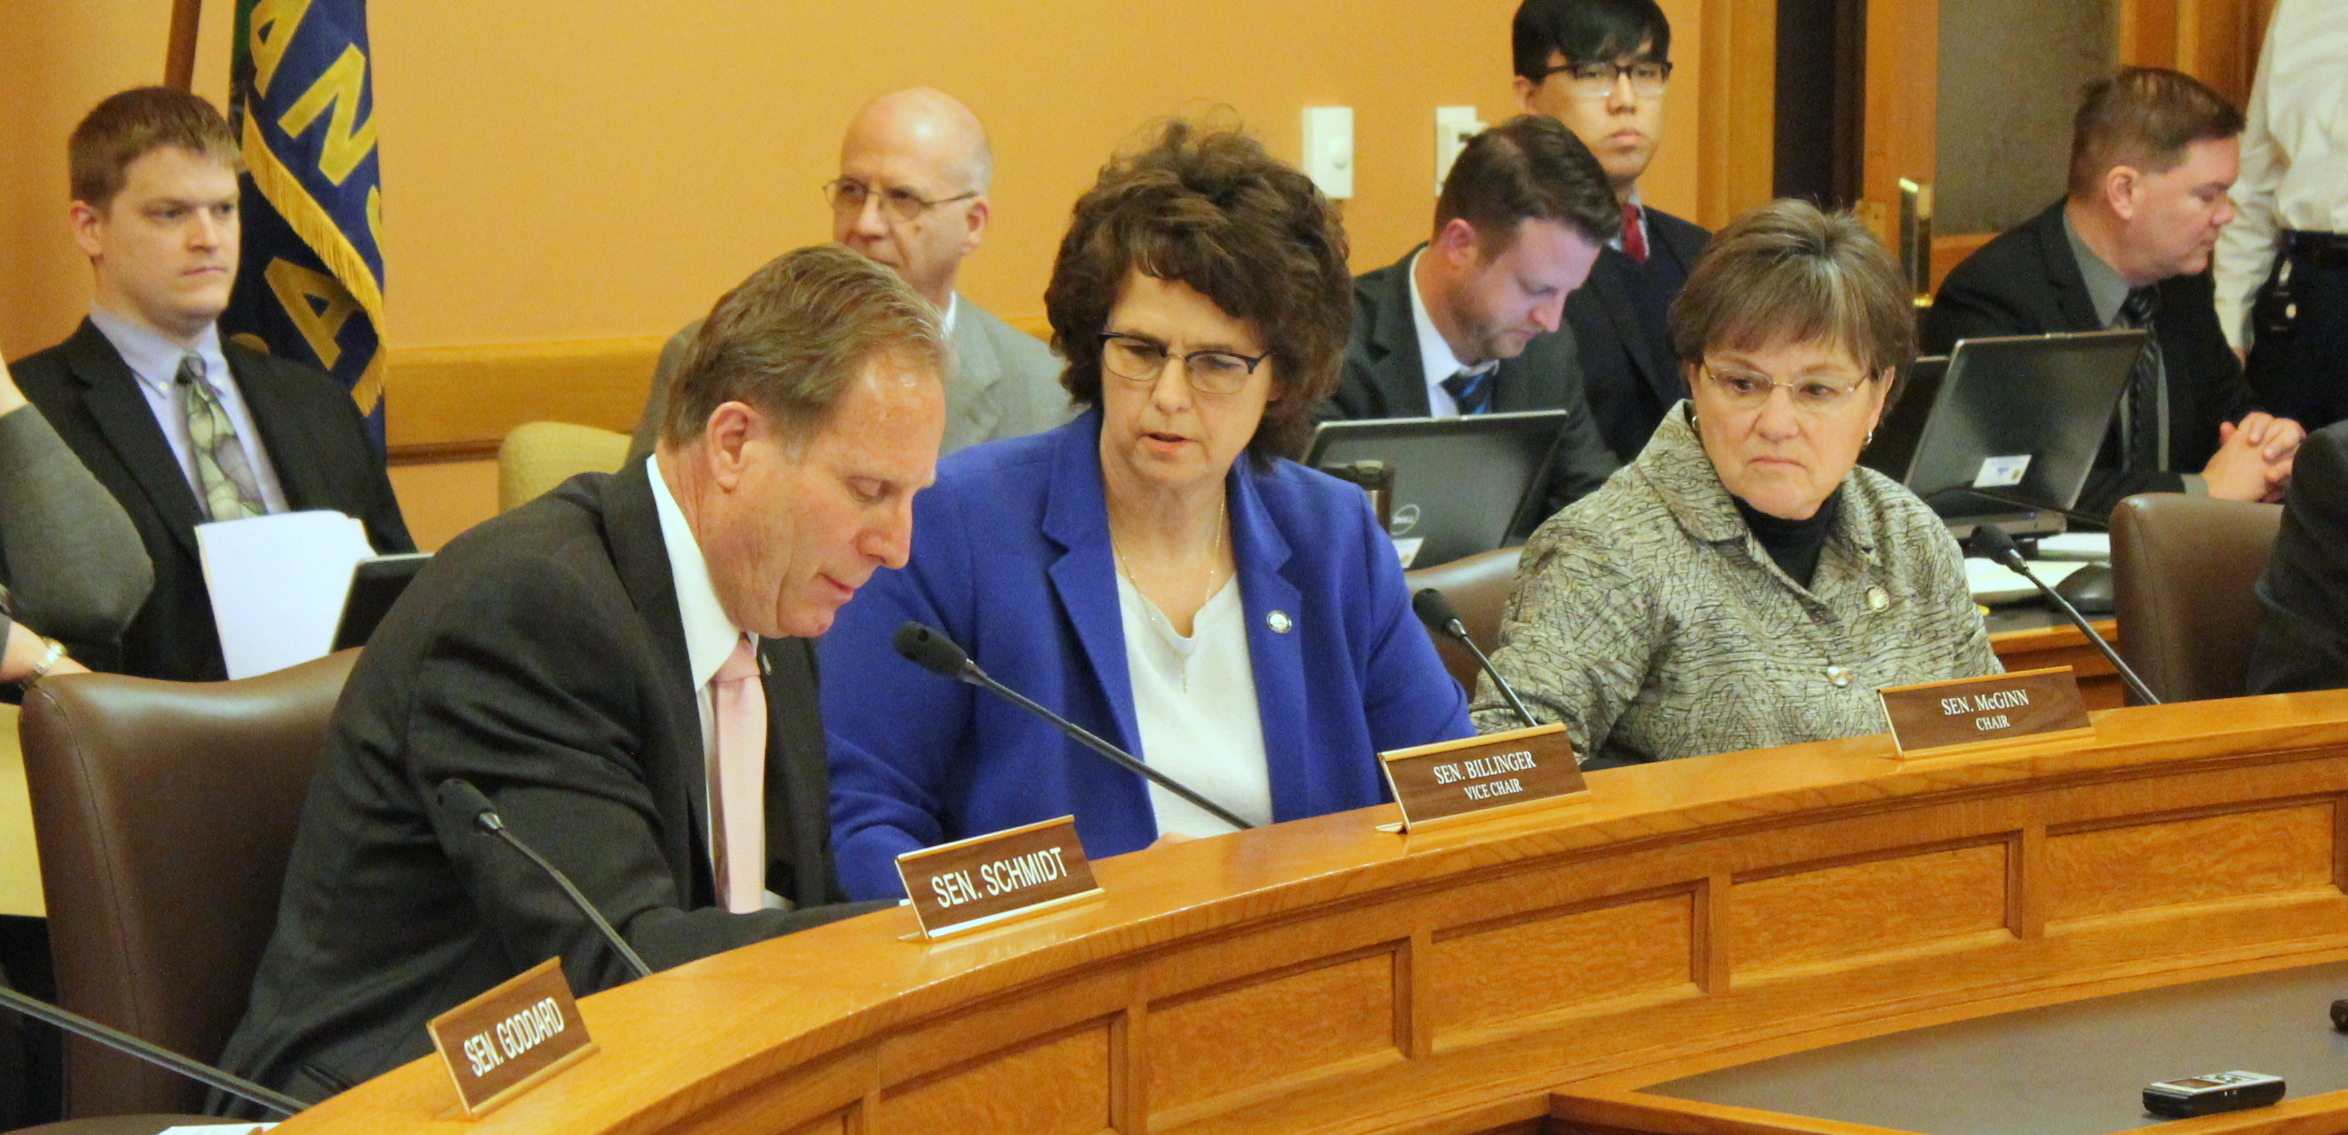 Senator Carolyn McGinn (center) speaking with other lawmakers at a meeting last month. (Photo by Stephen Koranda)